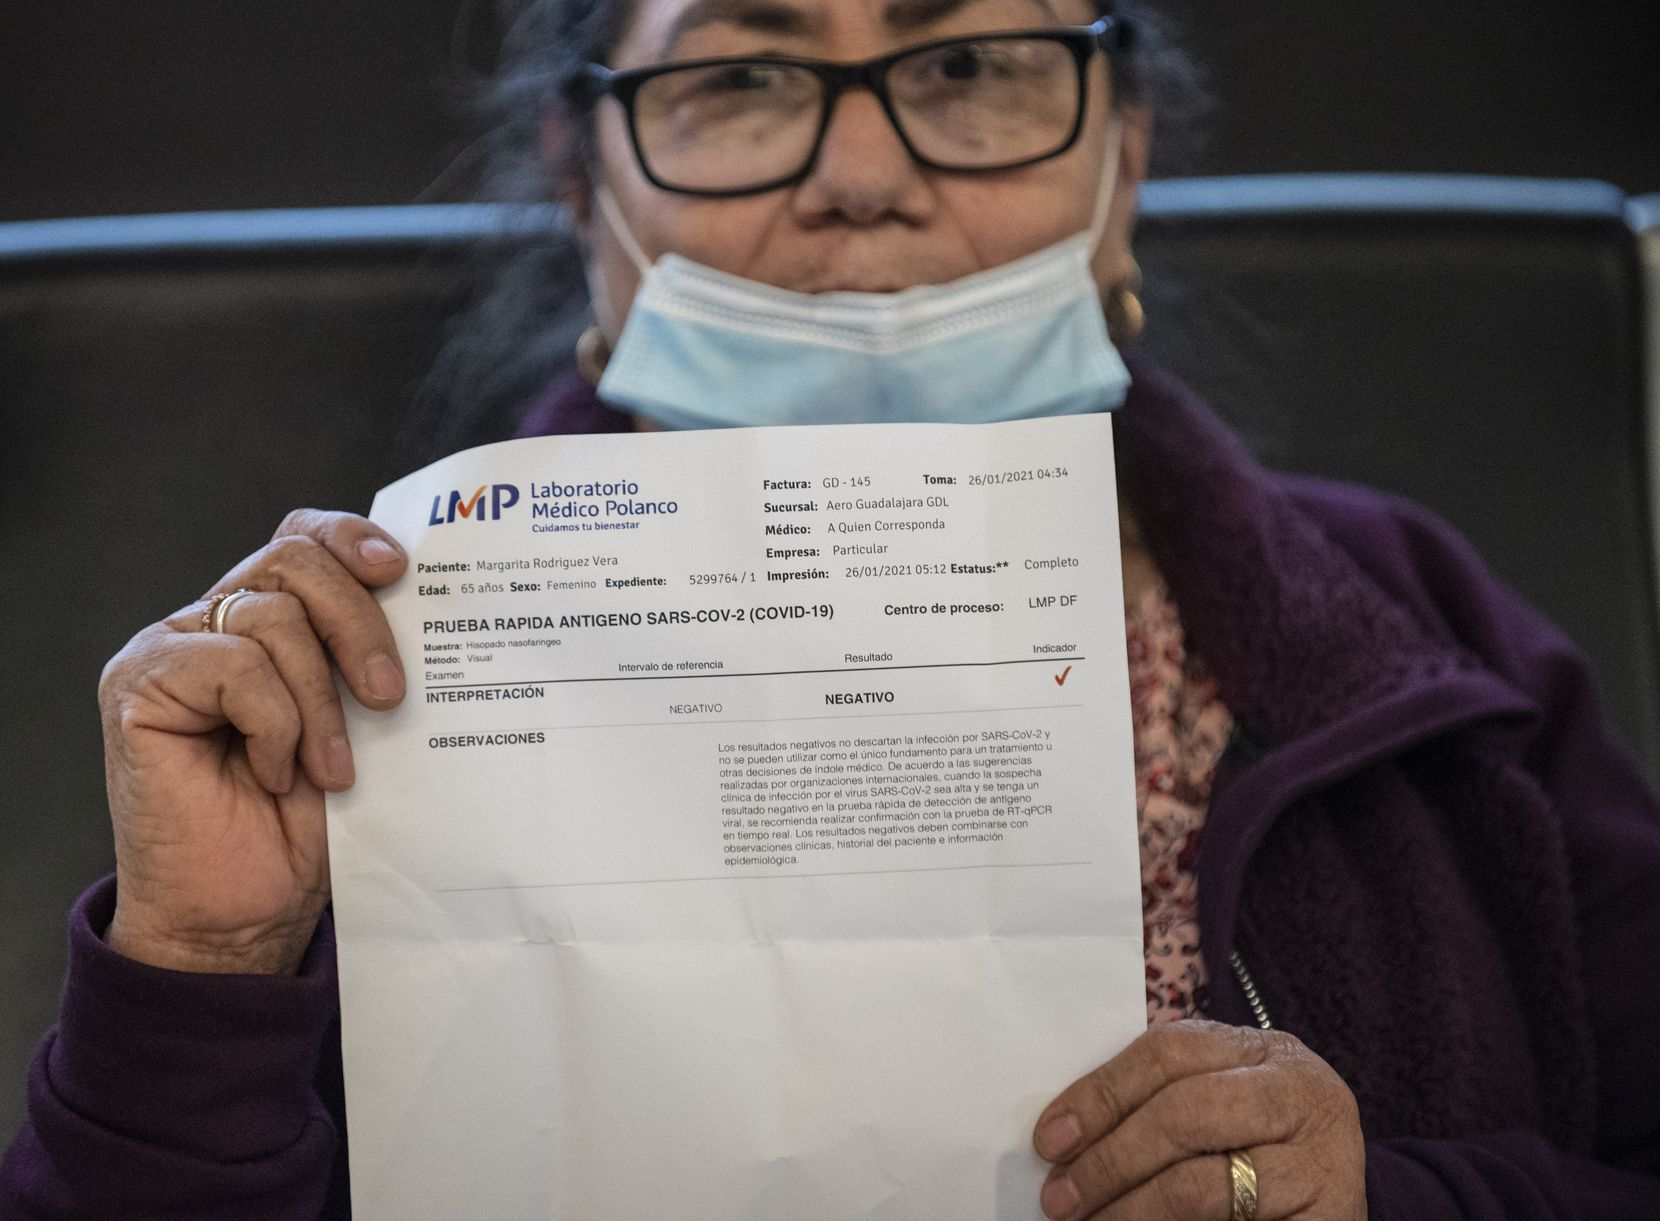 Margarita Rodriguez Vera shows the negative results of her COVID-19 rapid test needed before entering the country from Mexico, on Tuesday, Jan. 26, 2021 at Dallas-Fort Worth International Airport. Travelers returning from Mexico need to test negative for COVID-19 in order to return back into the country.